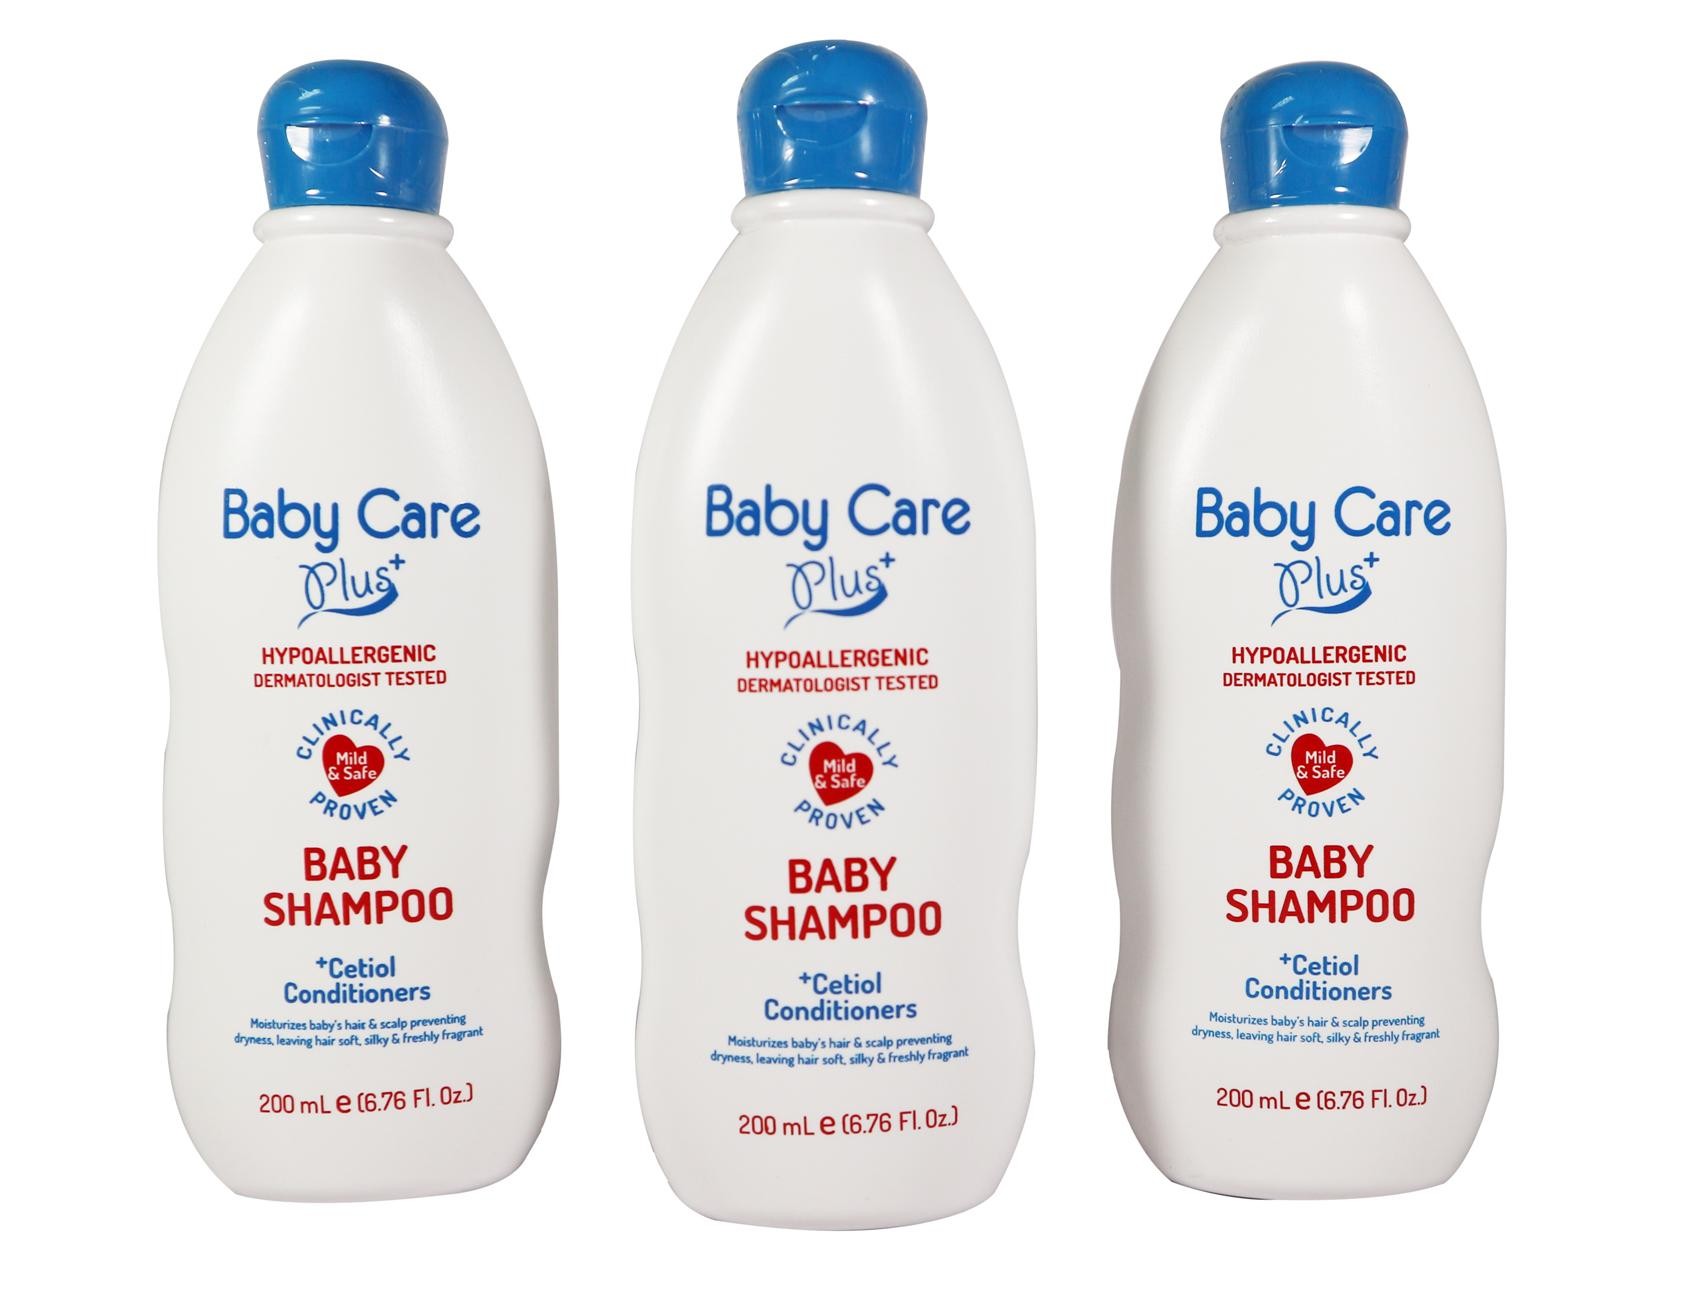 Baby Shampoos For Sale No Tears Shampoo Online Brands Prices Purebaby Fruity 230 Ml Care Plus Set Of 3 200ml